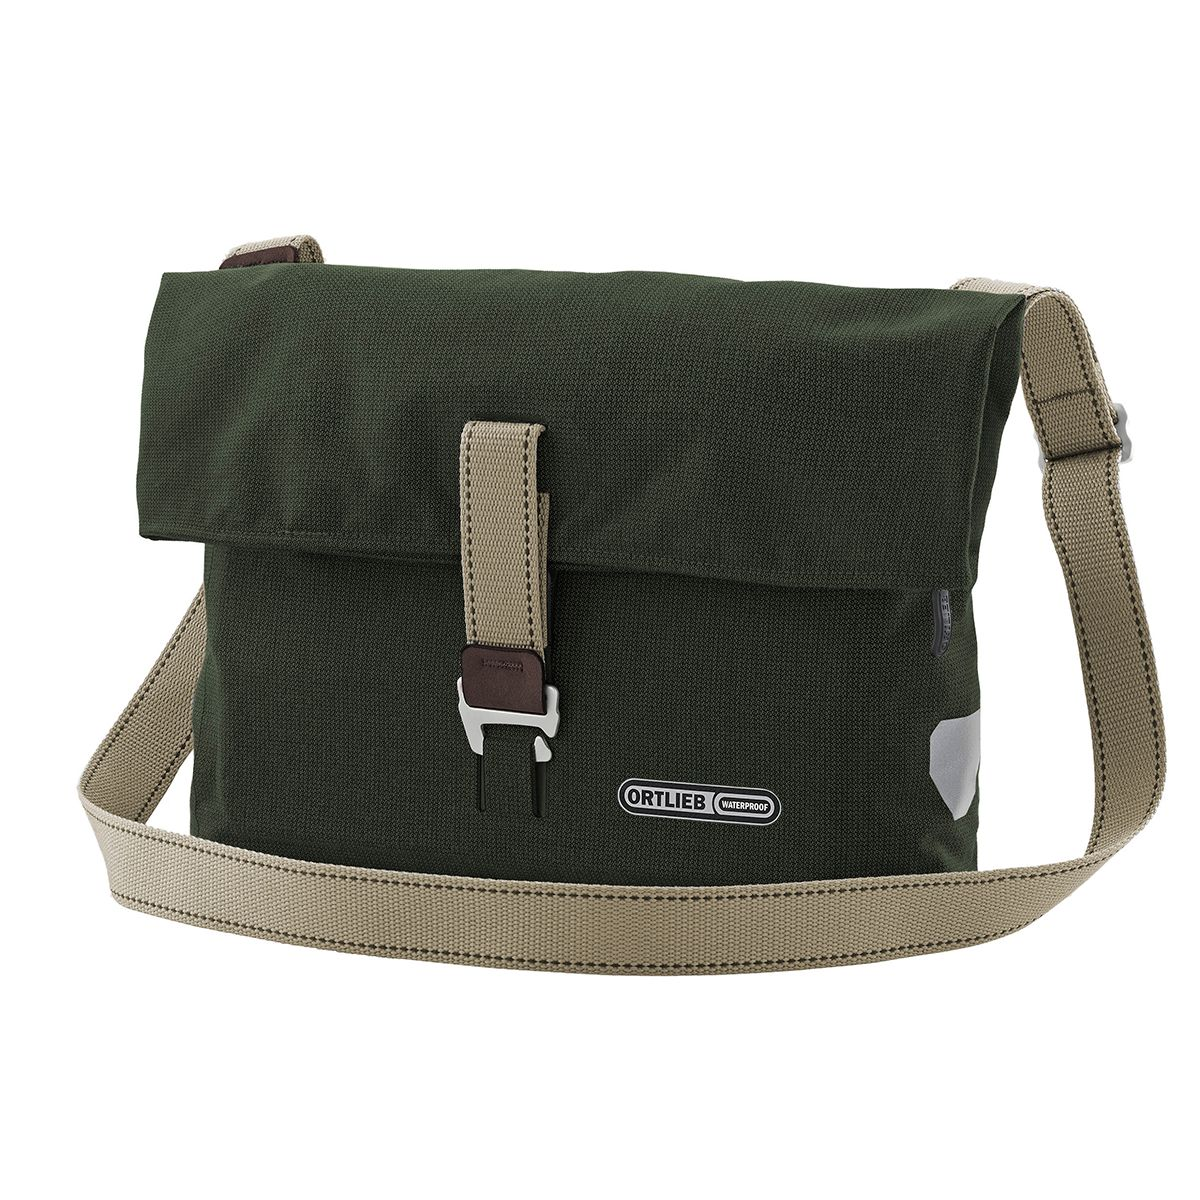 TWIN-CITY URBAN (SINGLE BAG) pannier